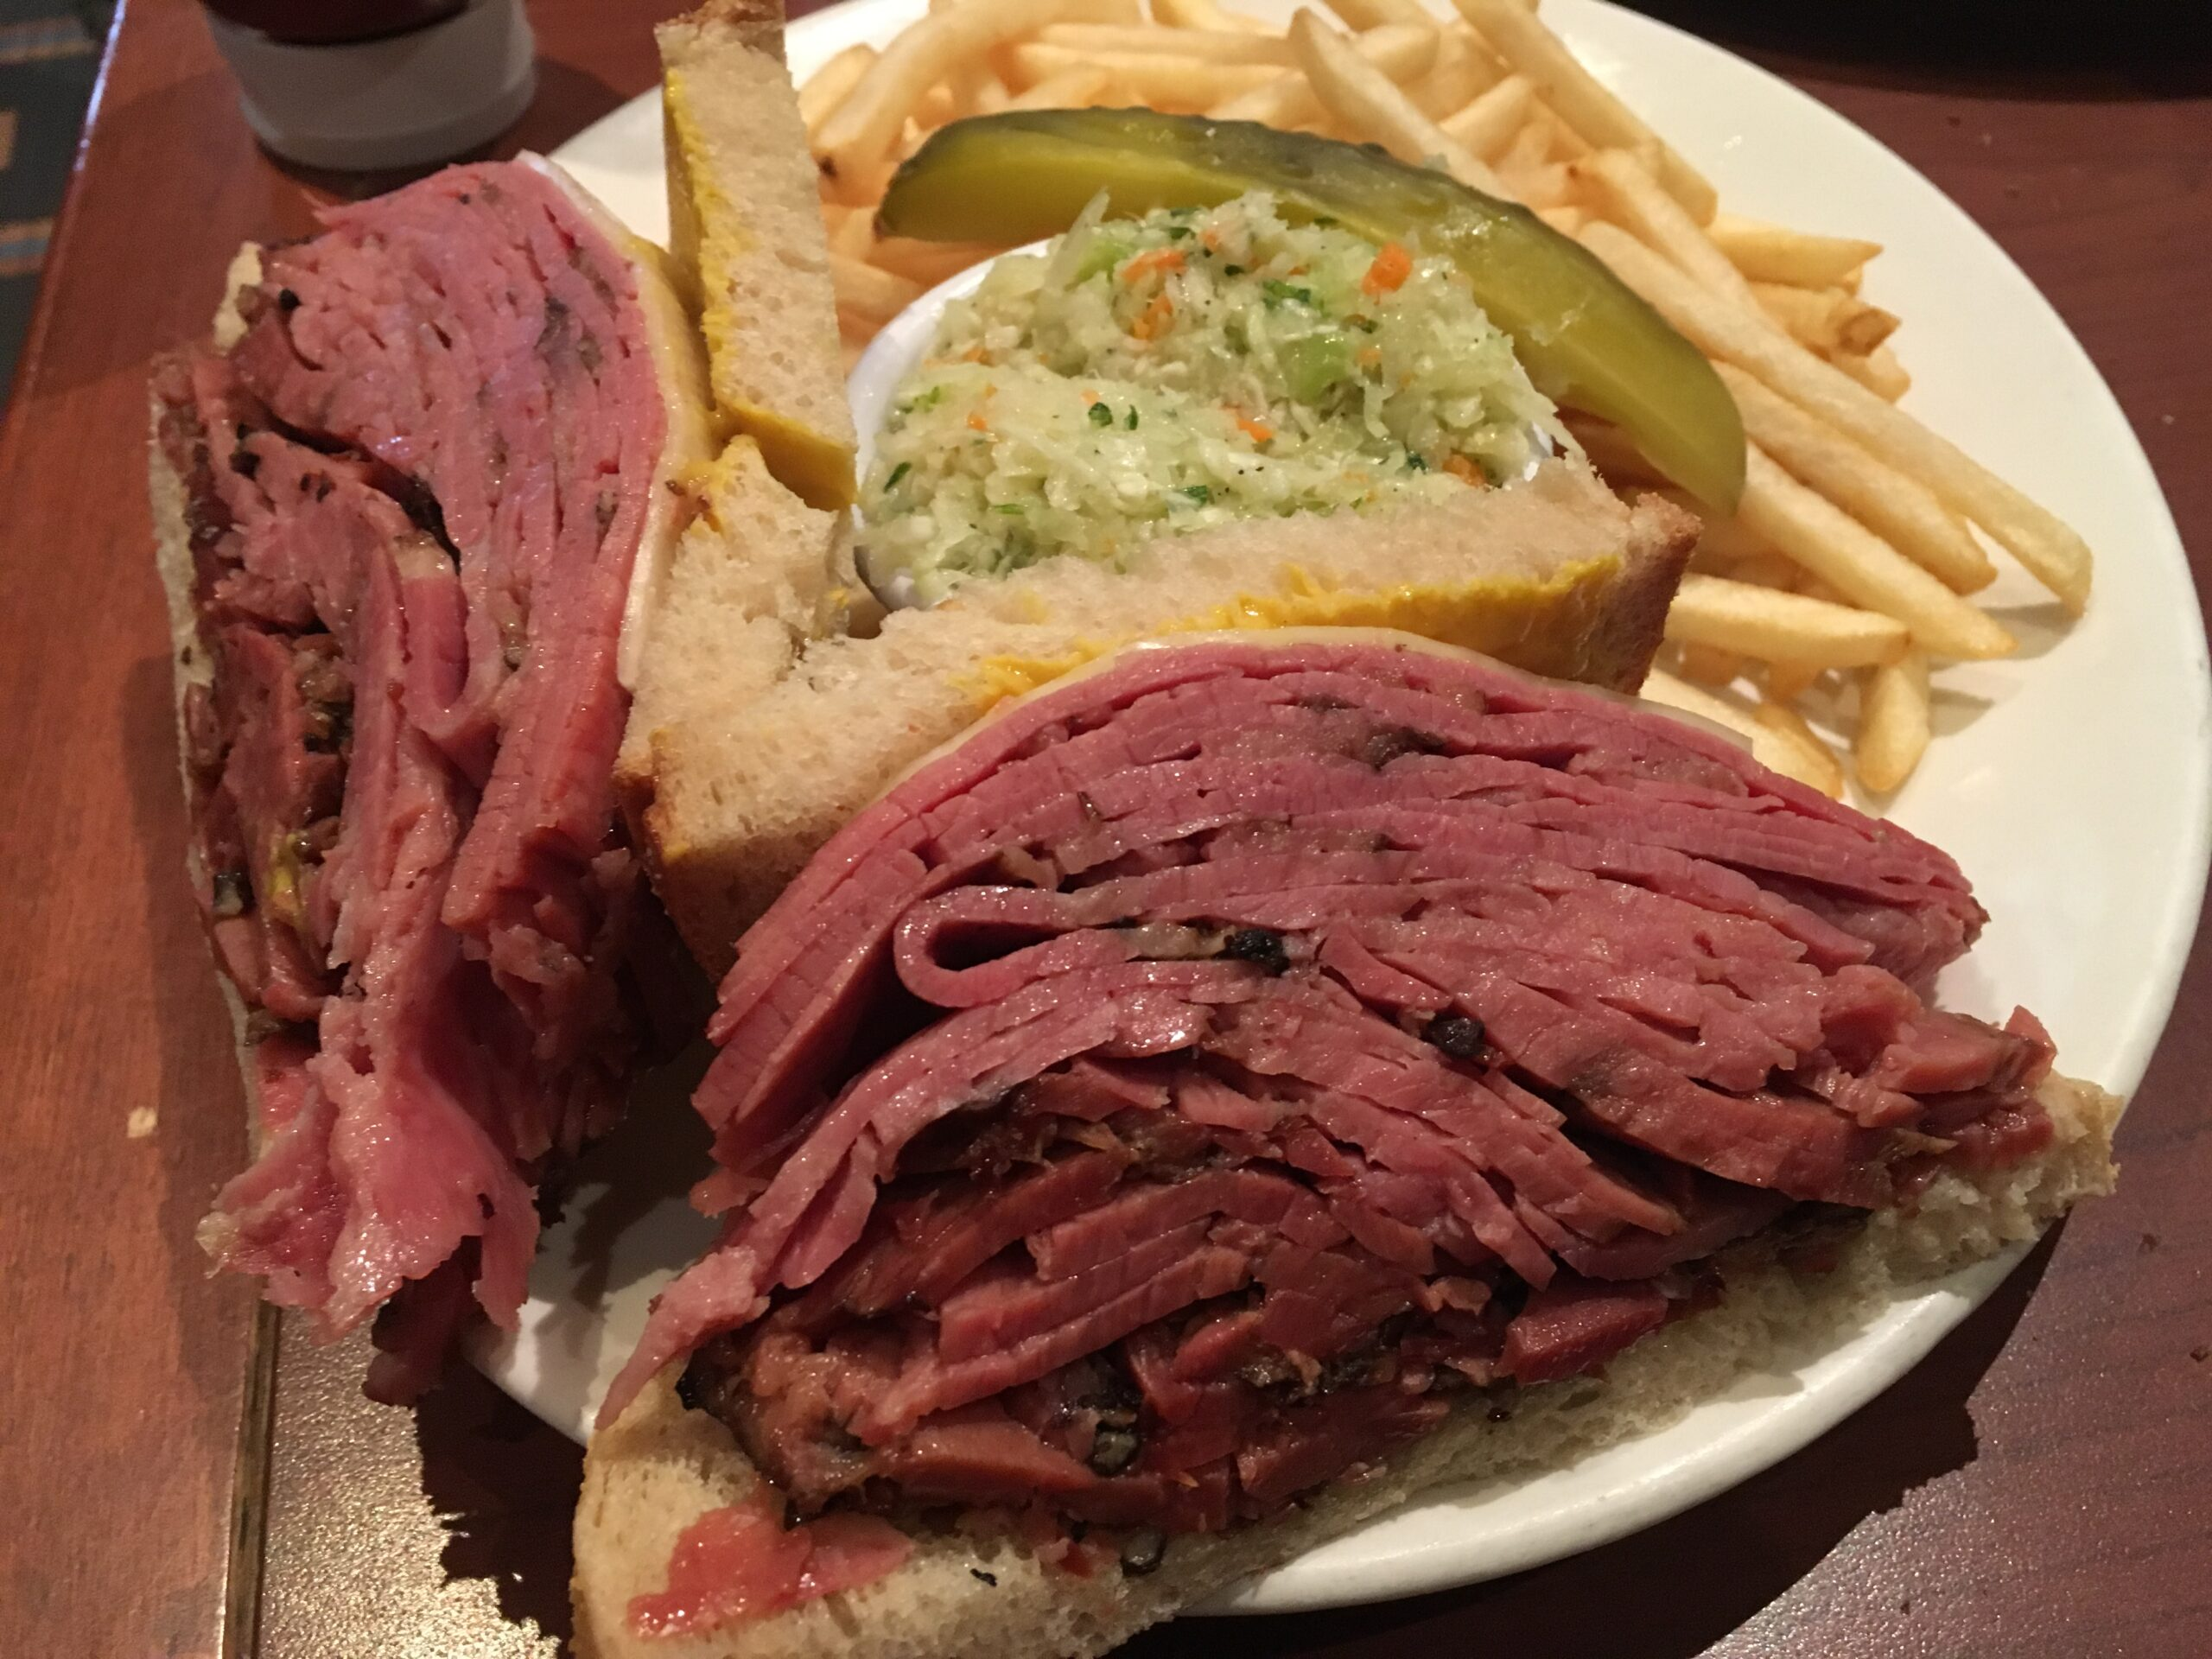 Oh my! Montreal smoked meat at Reuben's Deli & Steakhouse